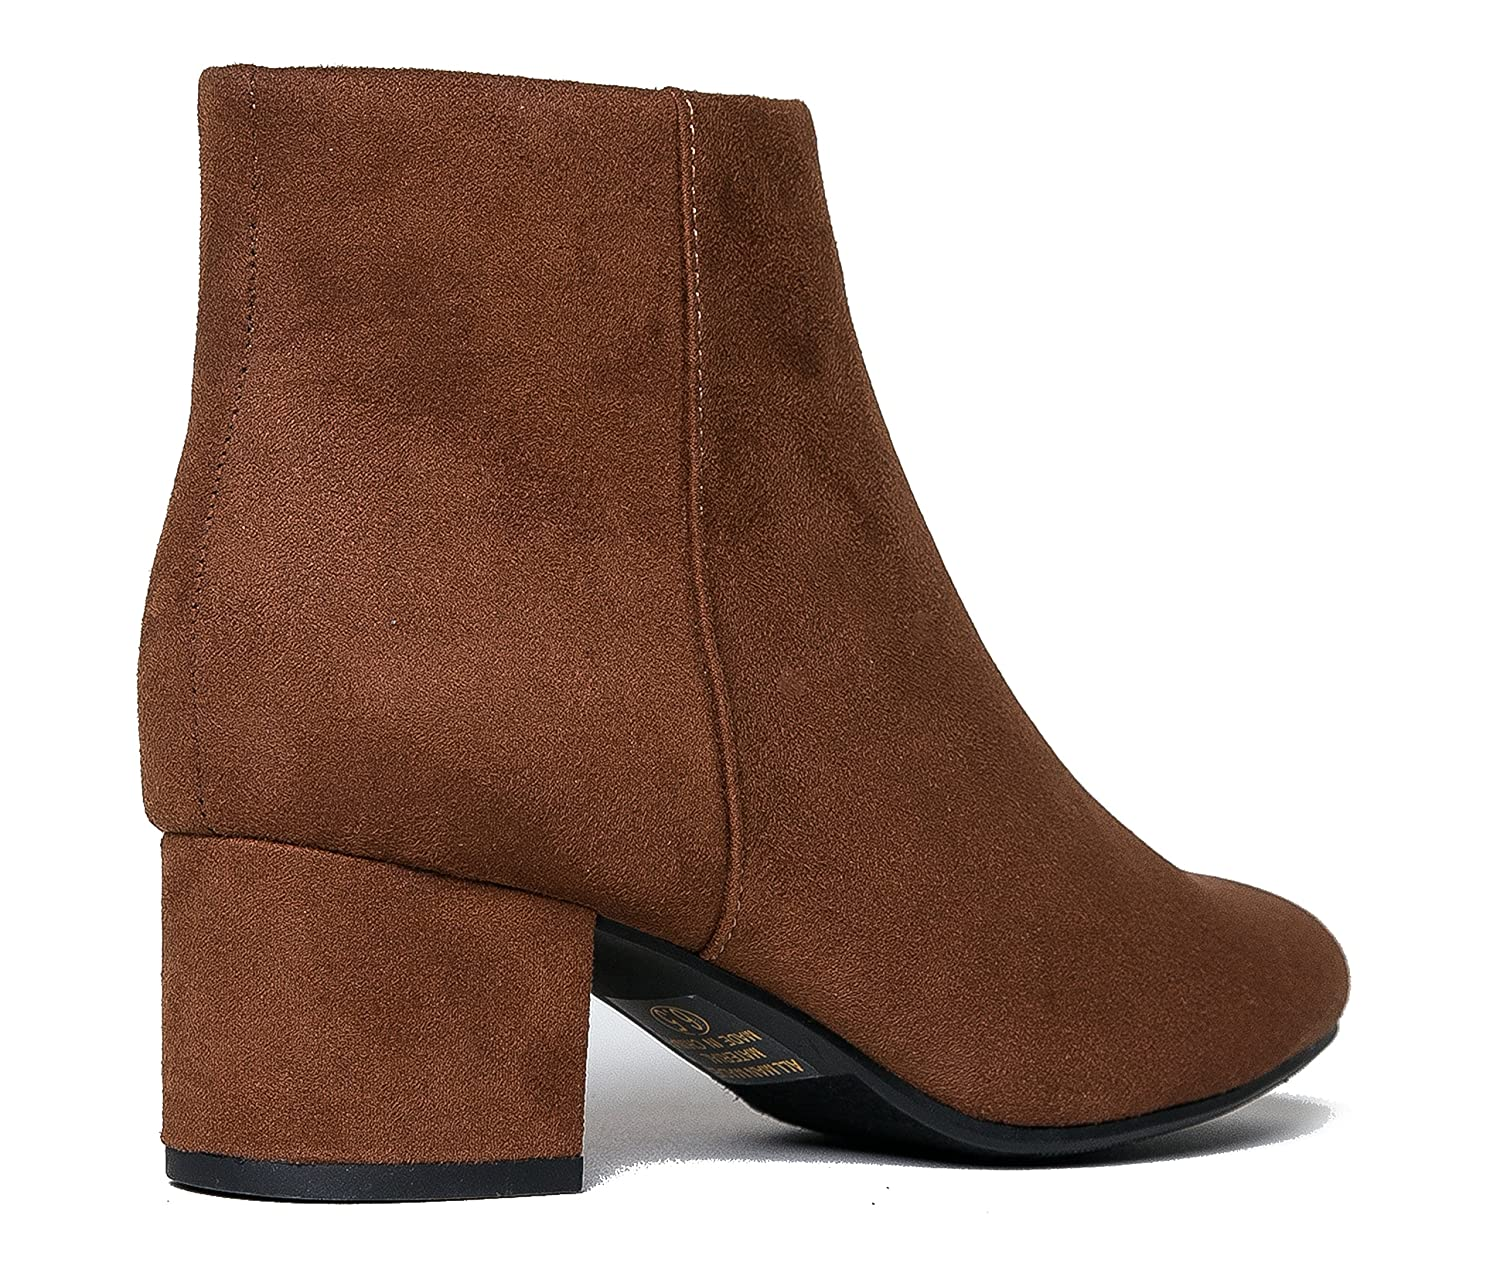 d8a8c7853f Amazon.com | J. Adams Low Heel Ankle Boot - Casual Zip Up Bootie -  Comfortable Everyday Round Toe Bootie - Jody | Ankle & Bootie